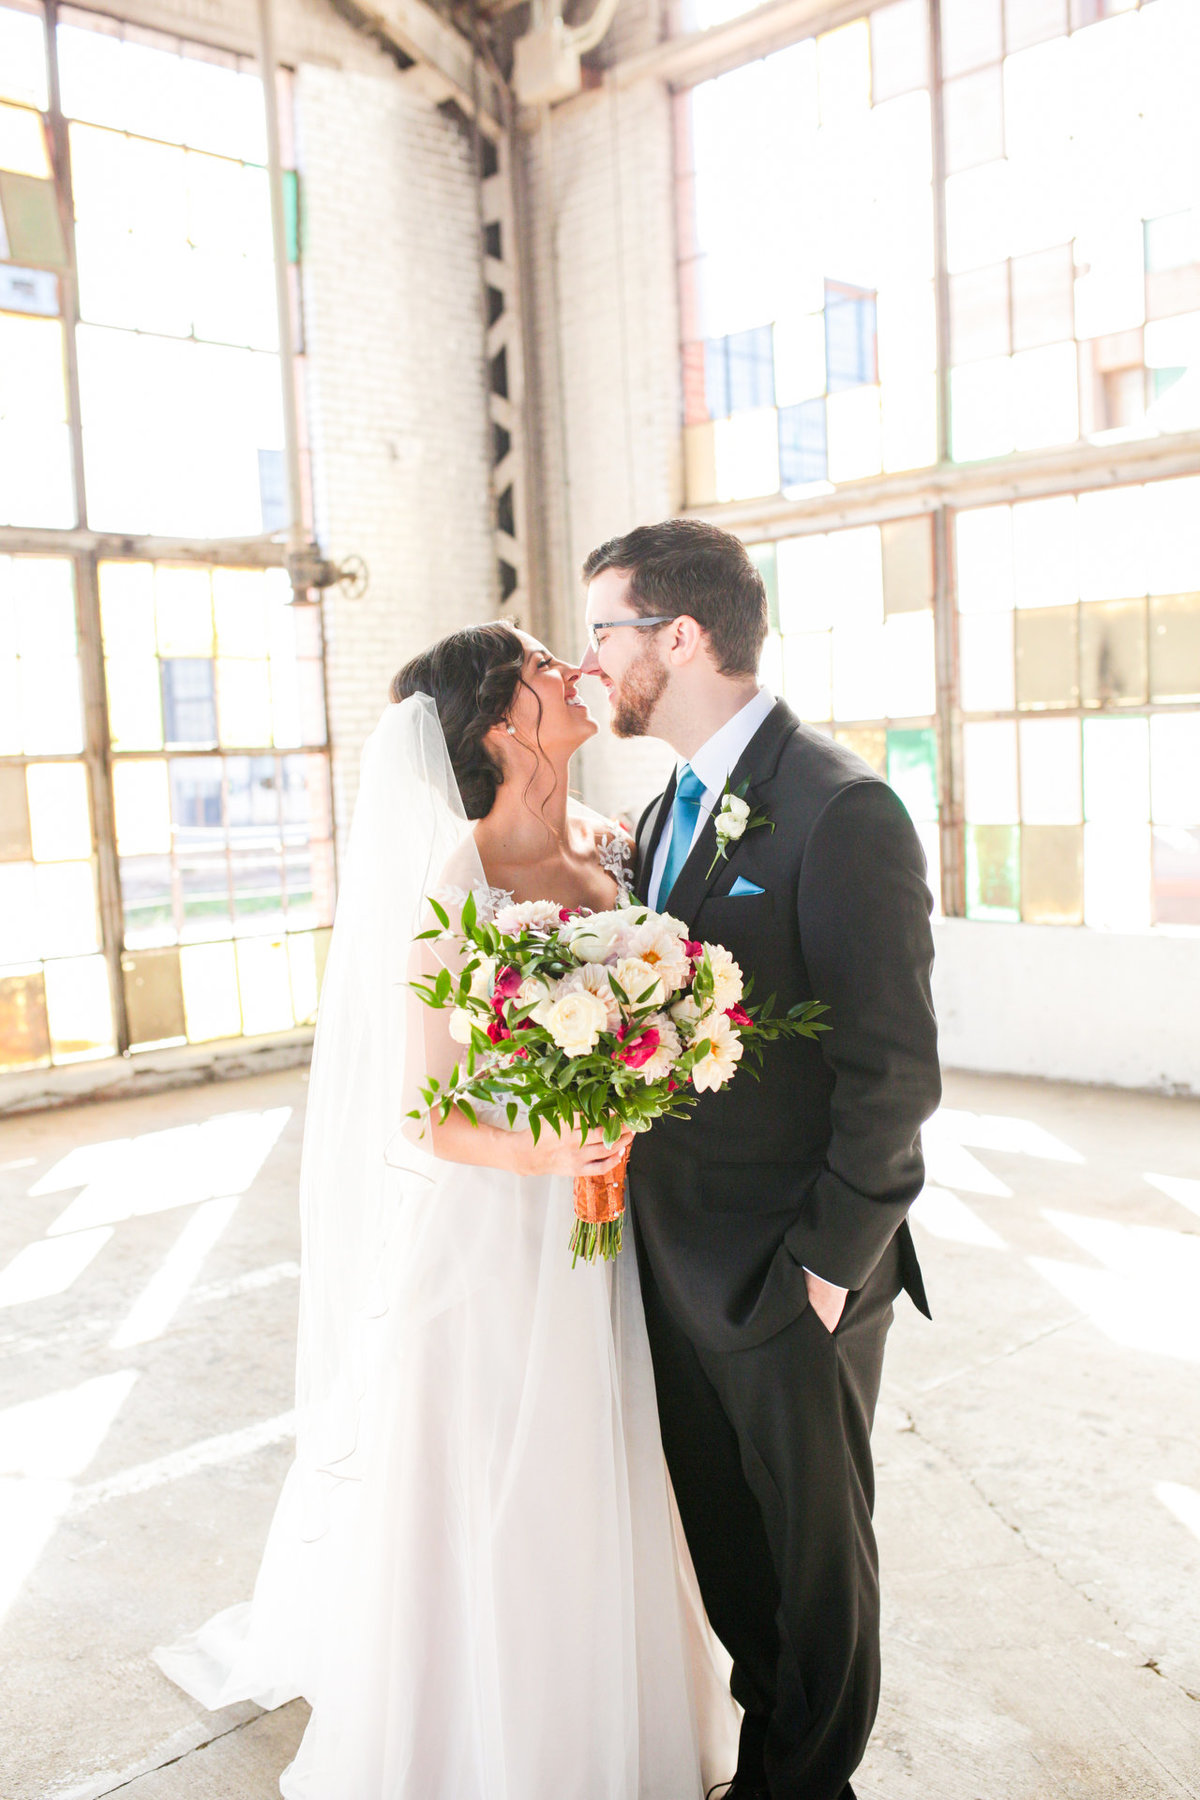 Albuquerque Wedding Photographer_Abq Rail Yards Reception_www.tylerbrooke.com_021